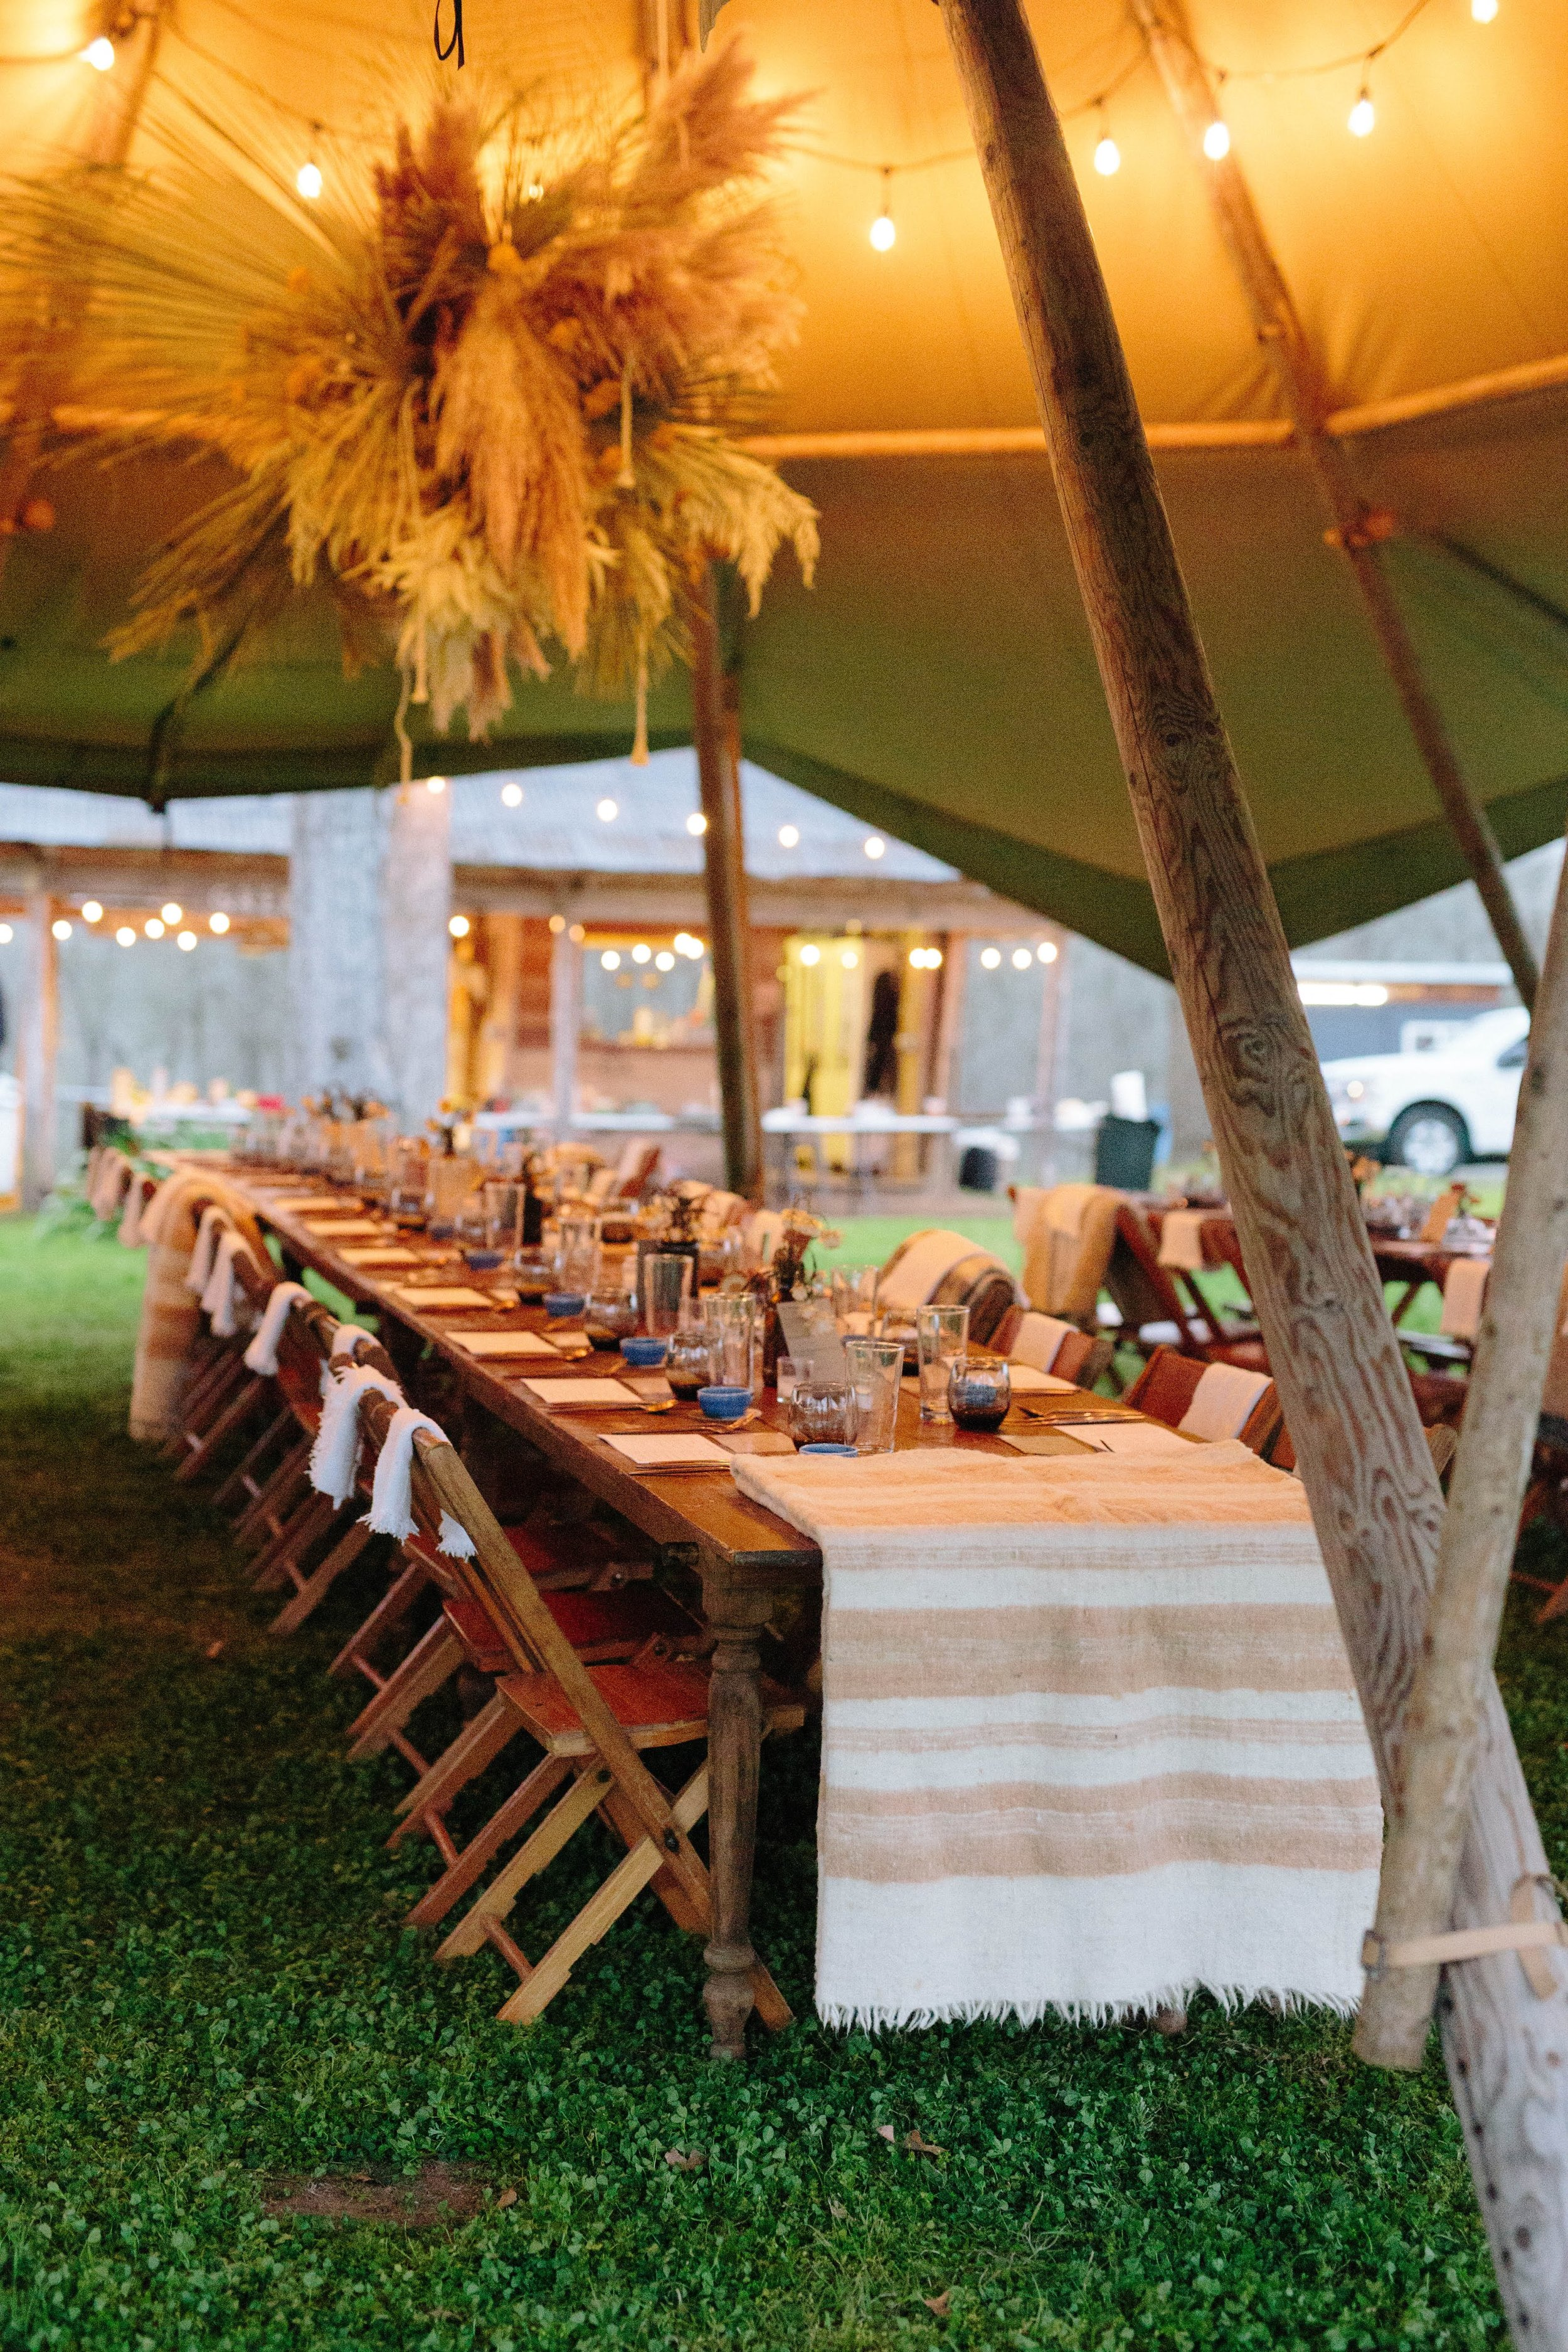 PRIVATE DINNER - an intimate culinary experience